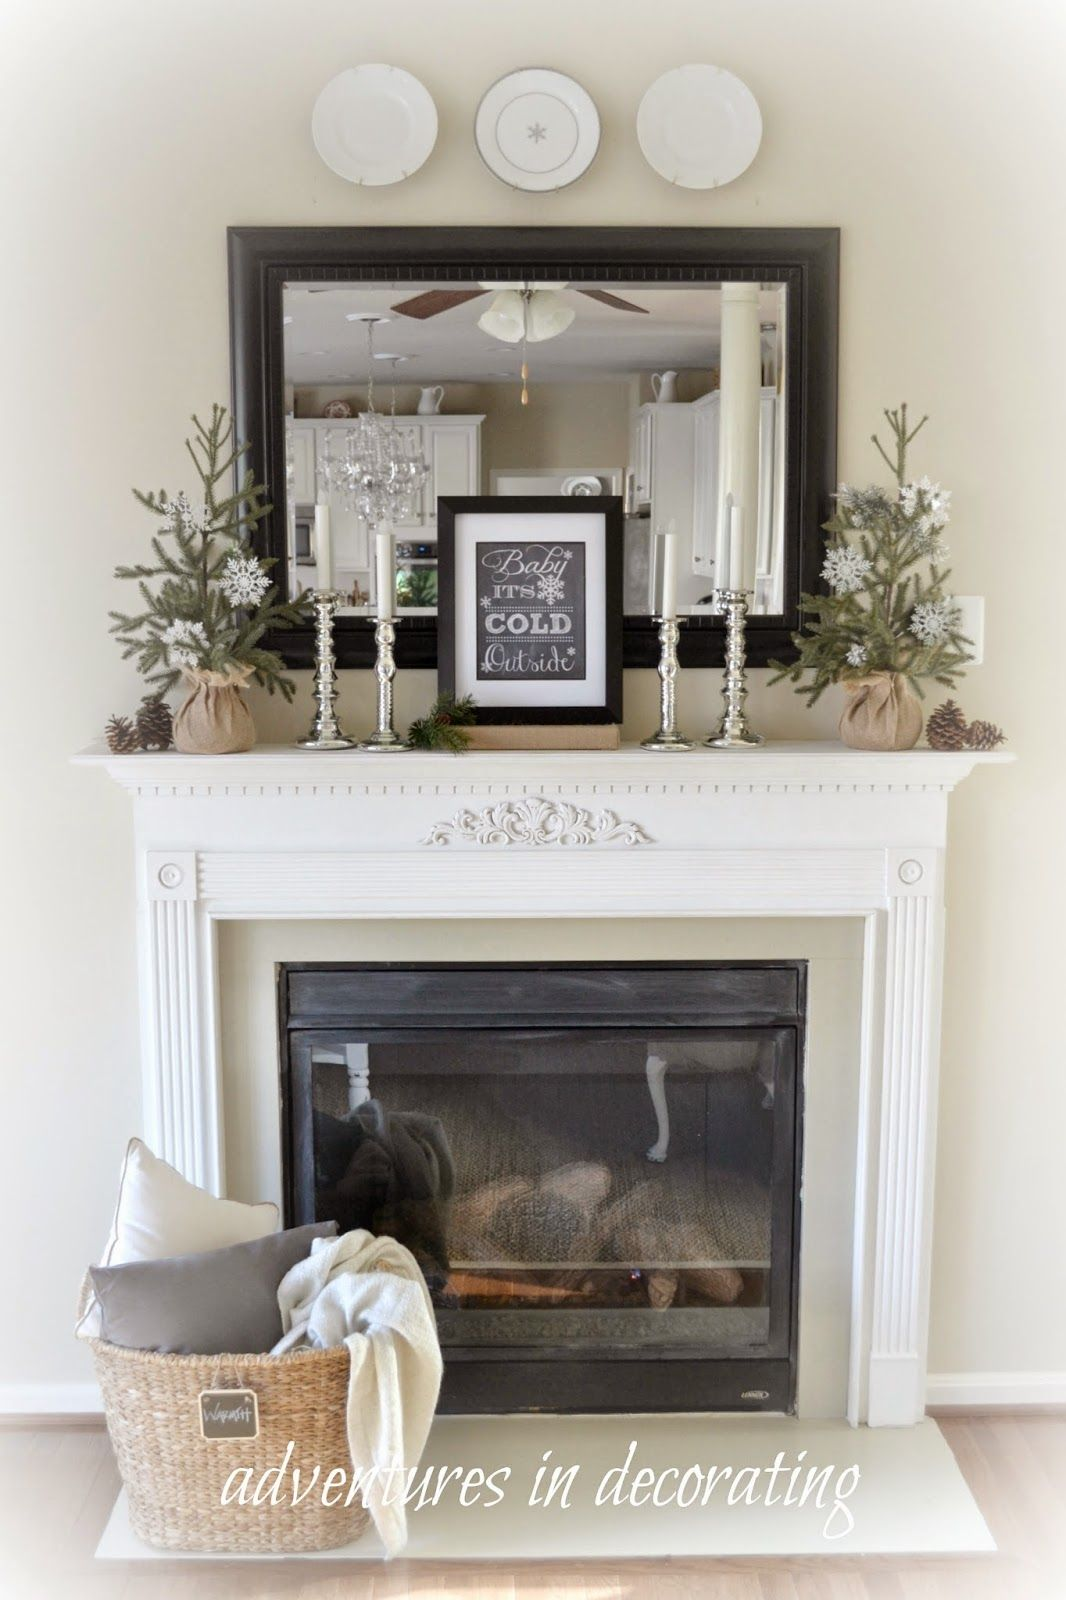 Modern Fireplace Mantel Decor Love The Basket With Blanket In Front Of The Fireplace